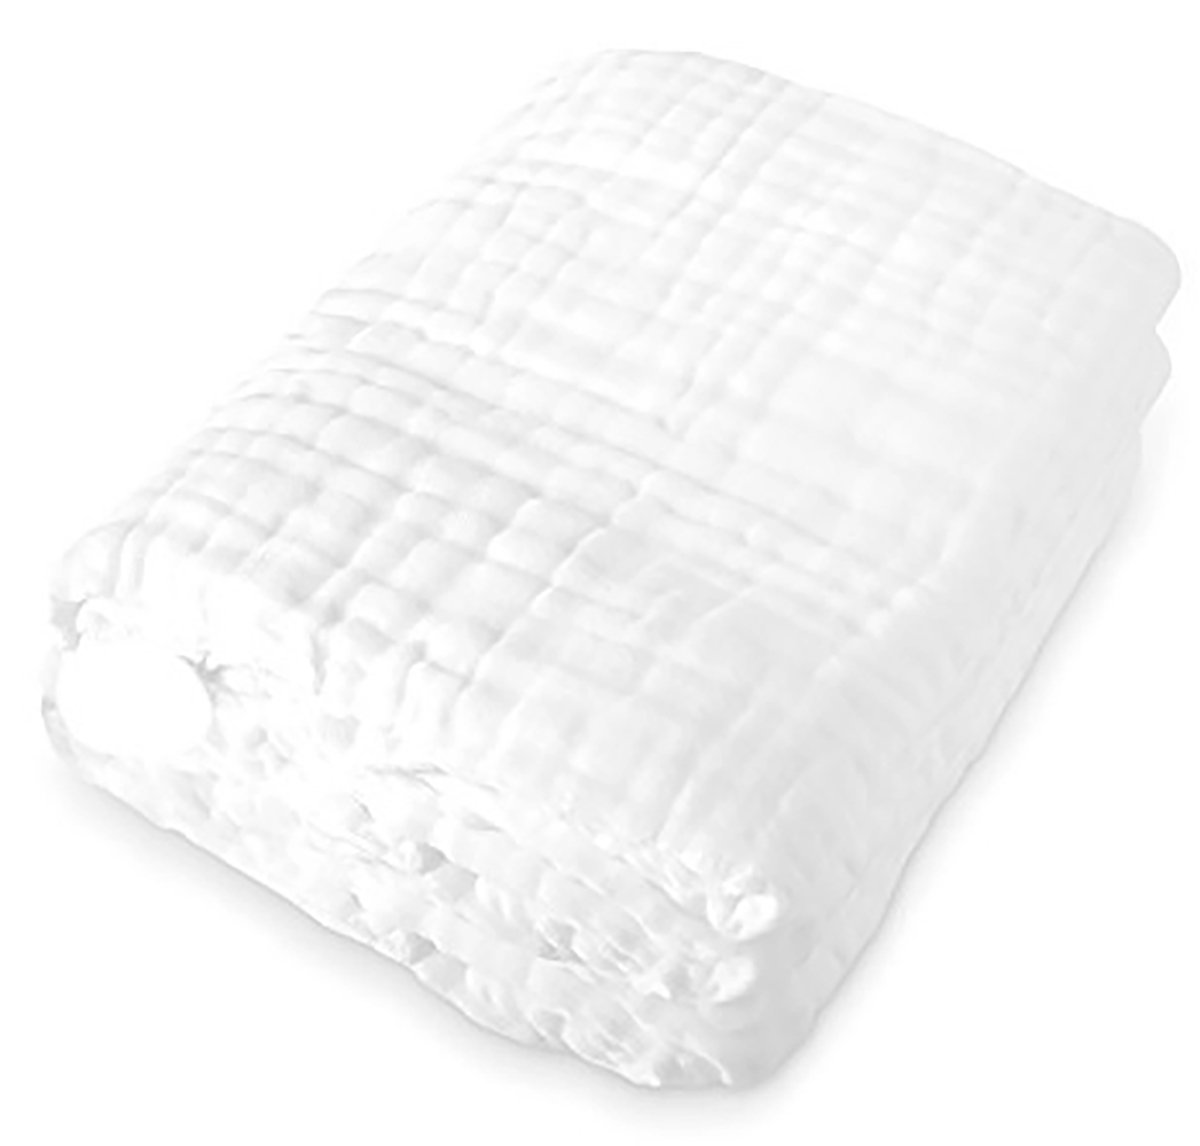 Dear Baby Gear Baby Blanket/Towel Cotton muslin 6 Layer Multi Use, White, 38 inches x 38 inches